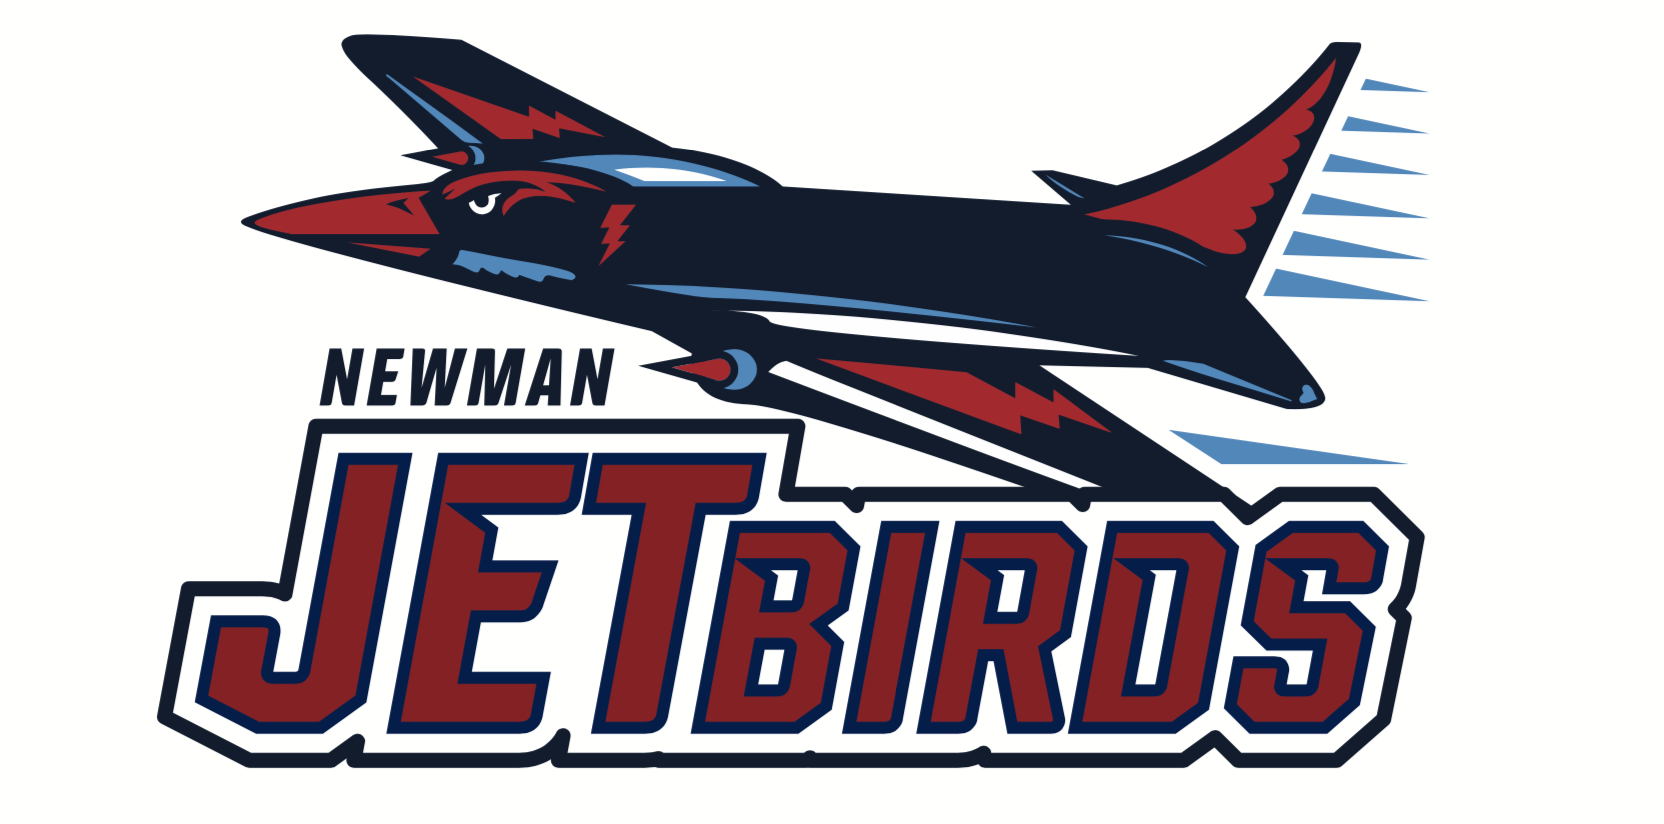 Newman Athletics considering new logo, mascot